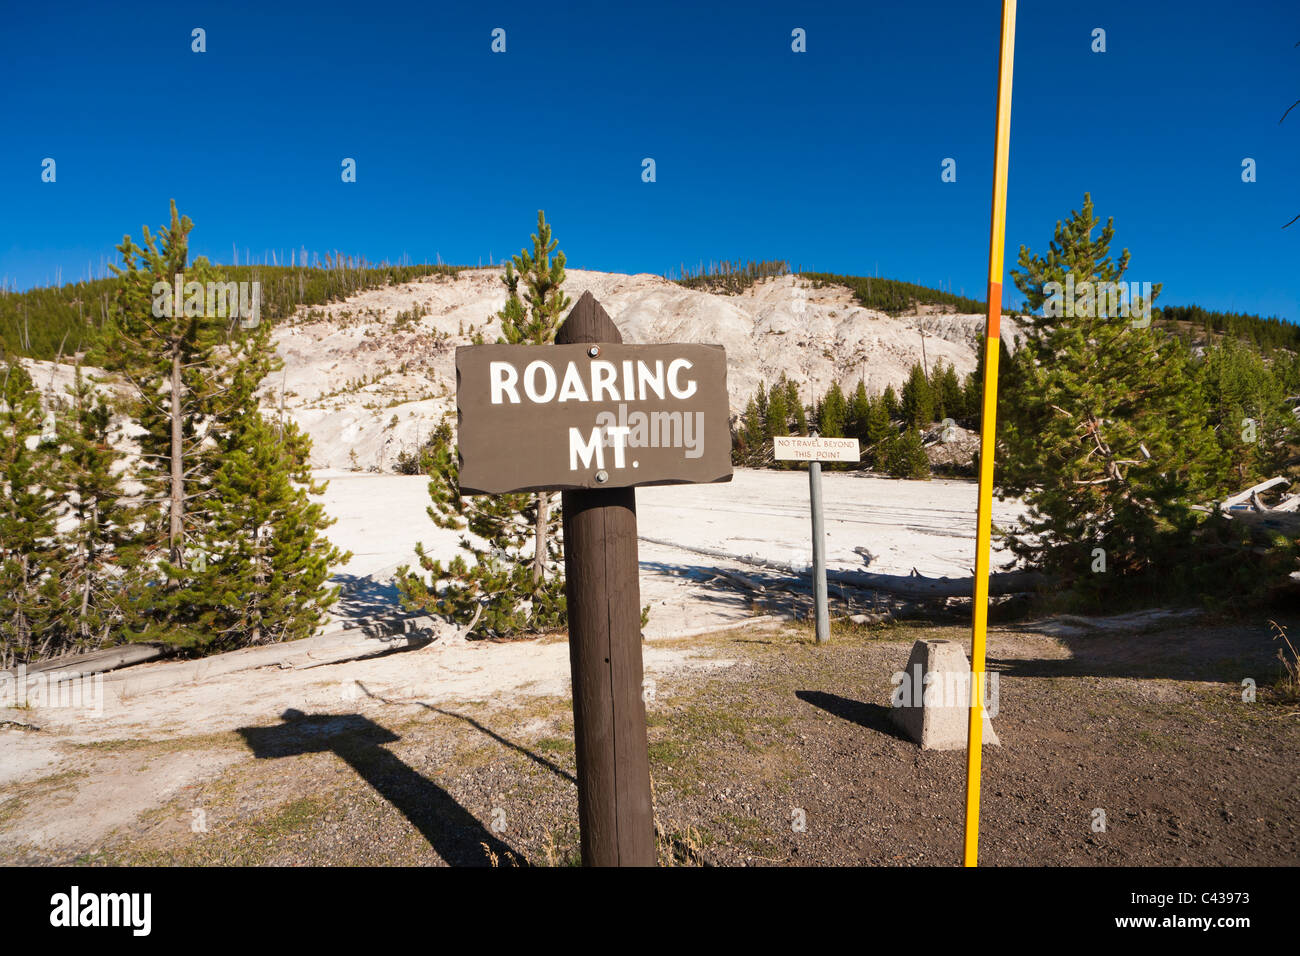 Roaring Mountain Yellowstone National Park signs and yardstick. Sign: no travel beyond this point. US Survey marker. - Stock Image